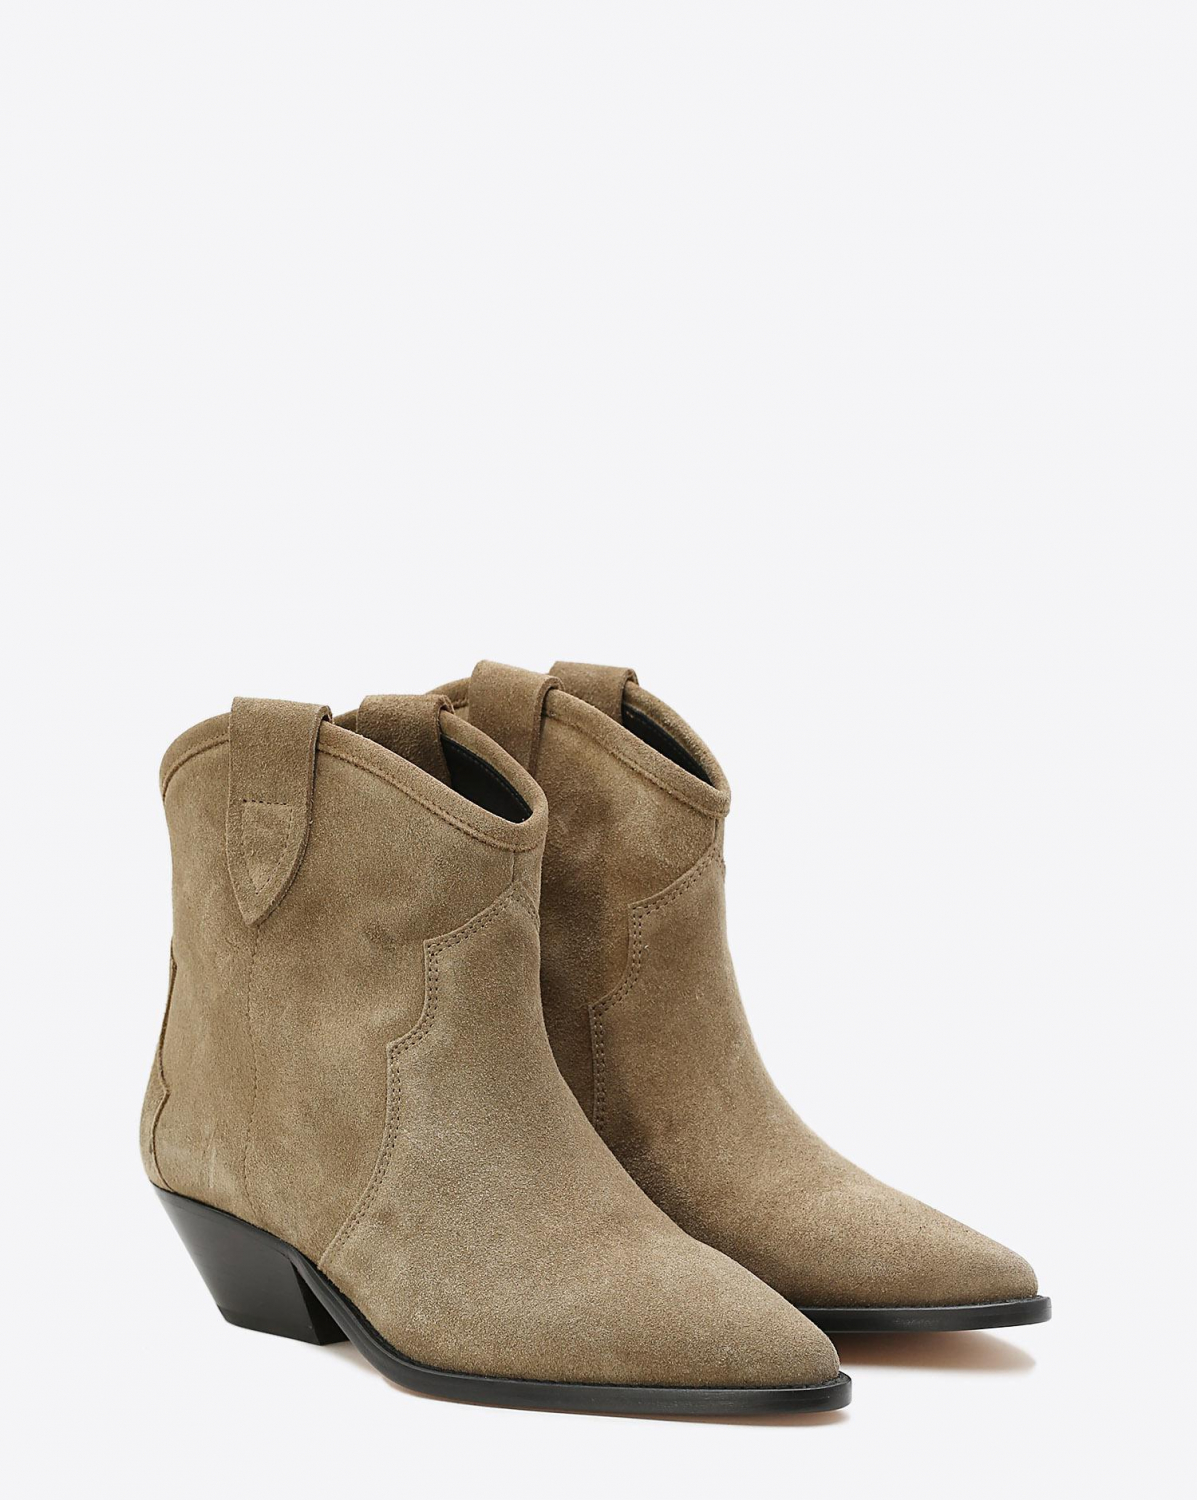 Isabel Marant Chaussures Boots DEWINA - Velvet Taupe